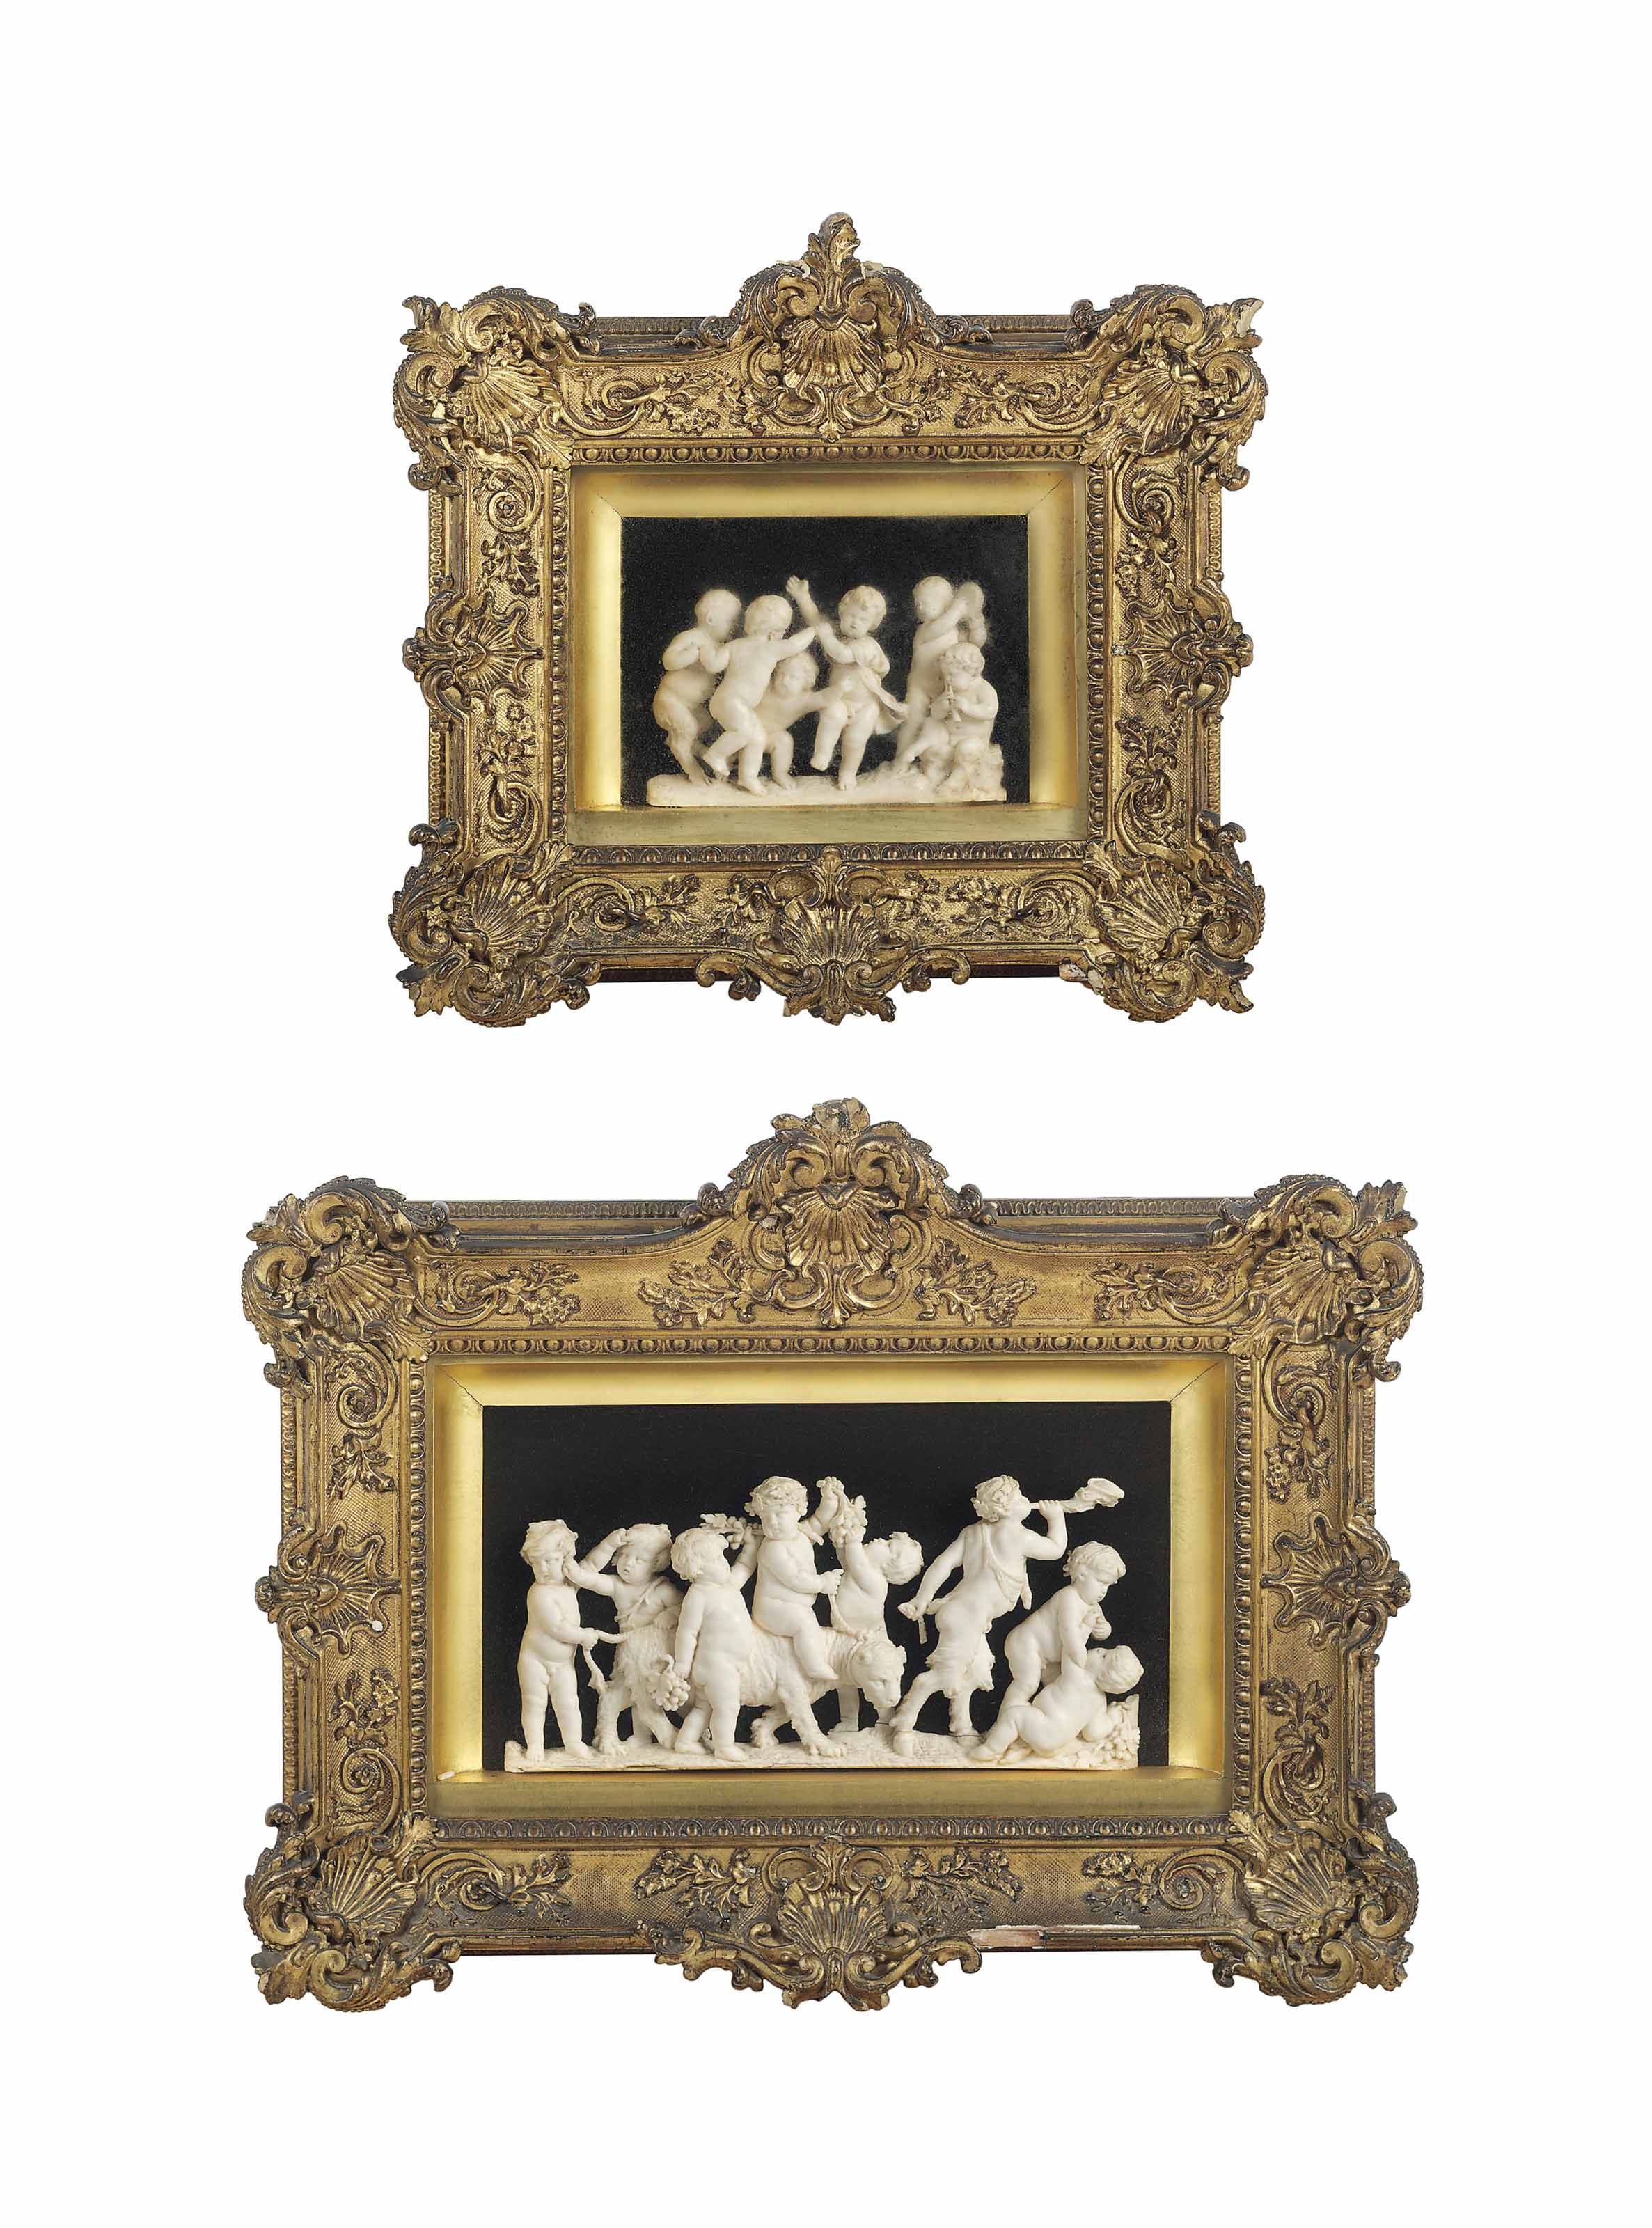 A CARVED IVORY RELIEF OF EIGHT INFANT BACCHI PLAYING